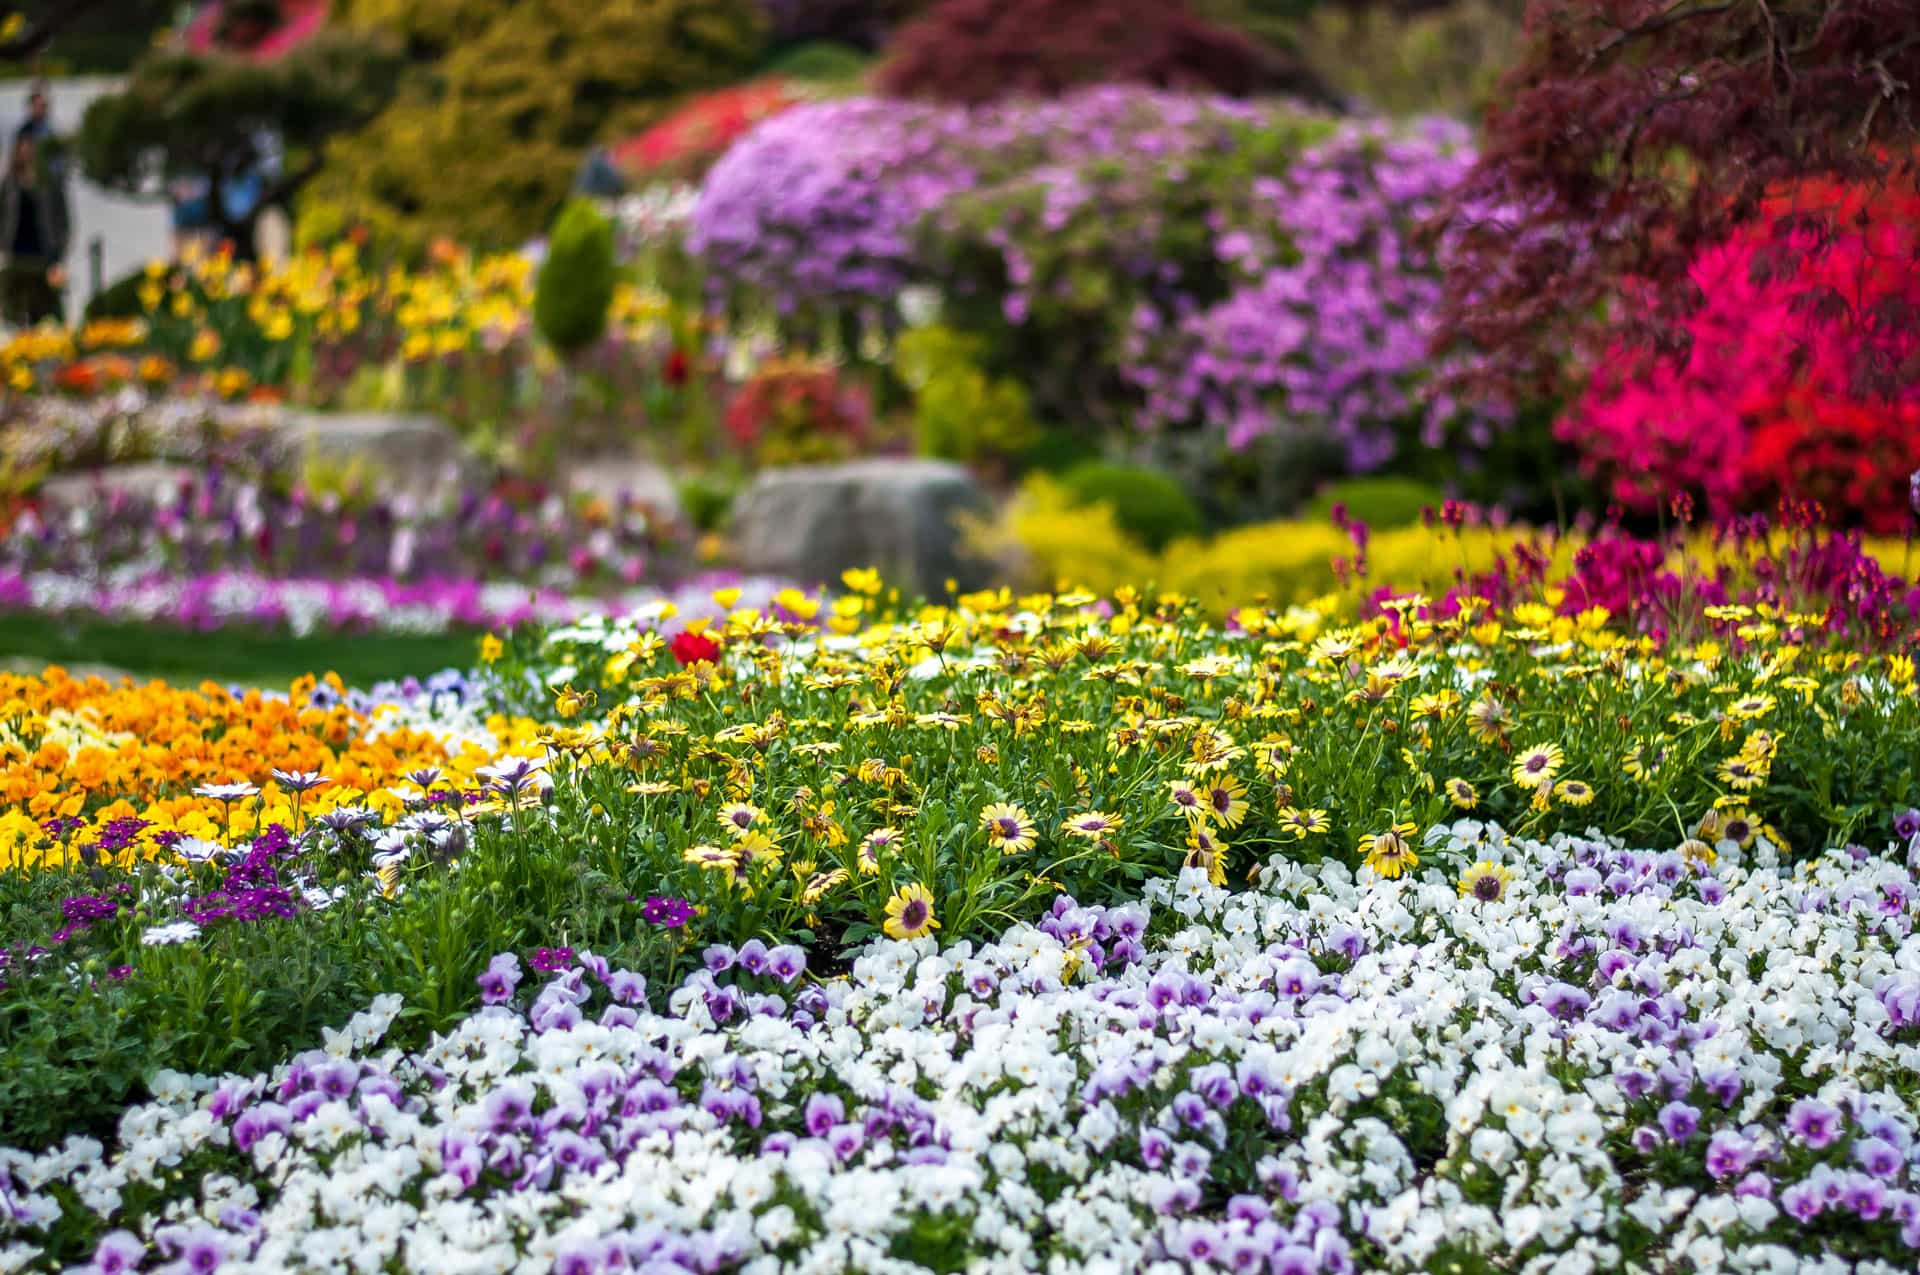 The Garden of Morning Calm South Korea